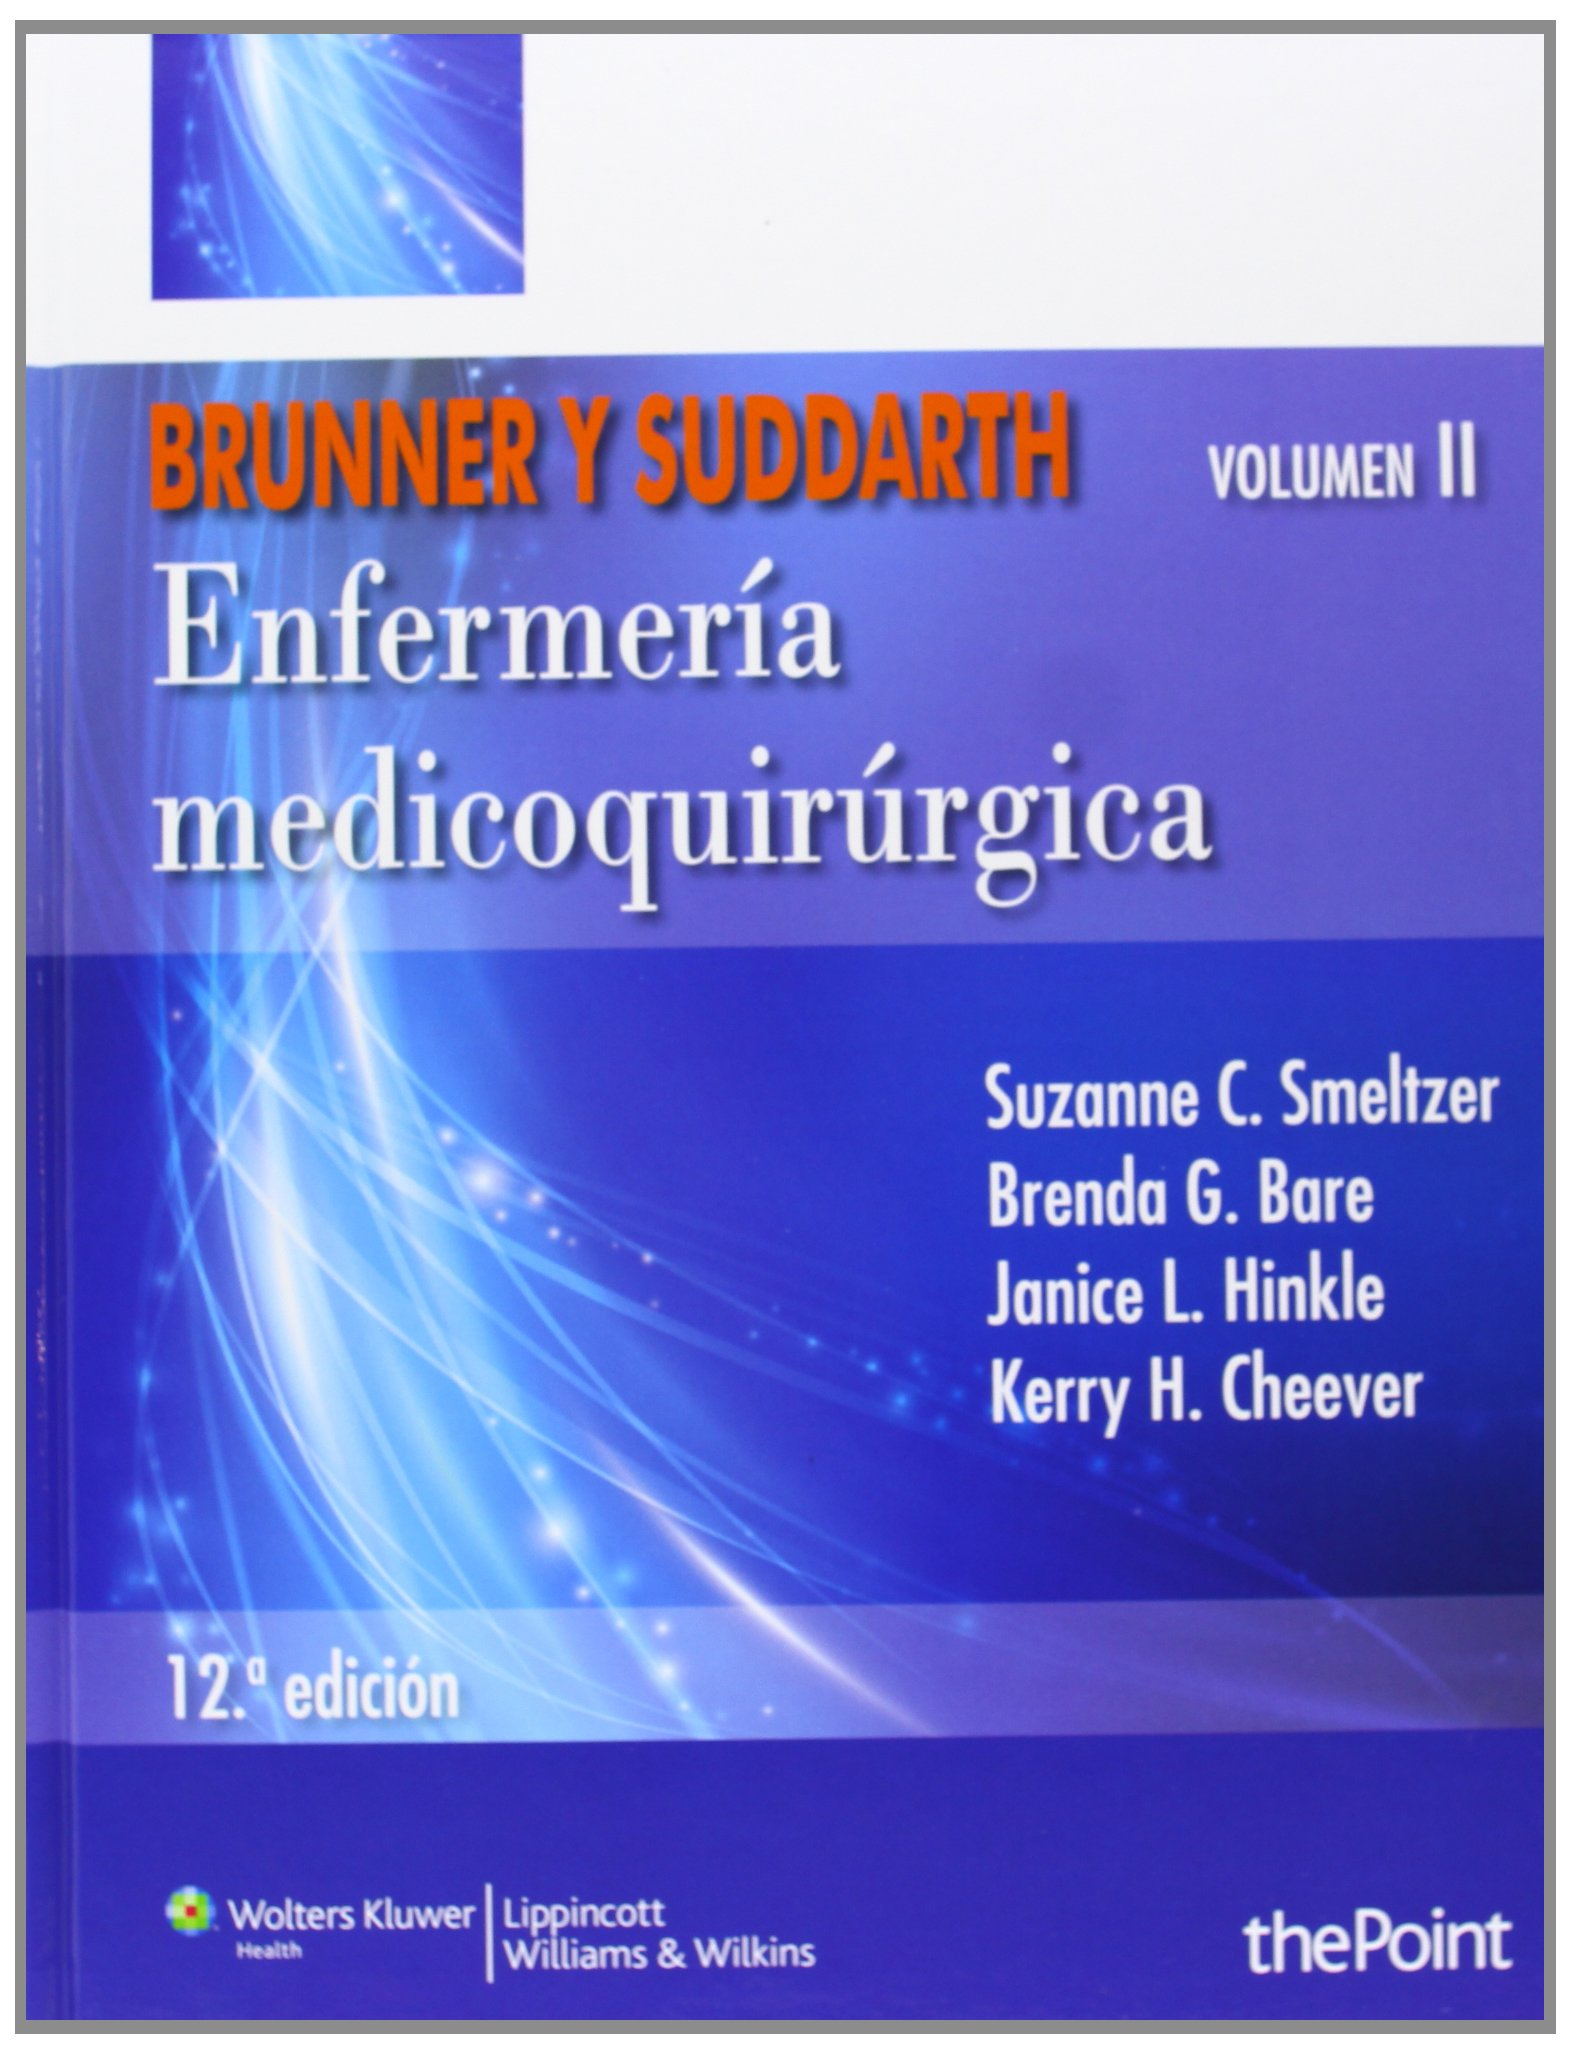 Buy brunner y suddarth enfermeria medico quirurgica book online at buy brunner y suddarth enfermeria medico quirurgica book online at low prices in india brunner y suddarth enfermeria medico quirurgica reviews ratings fandeluxe Choice Image